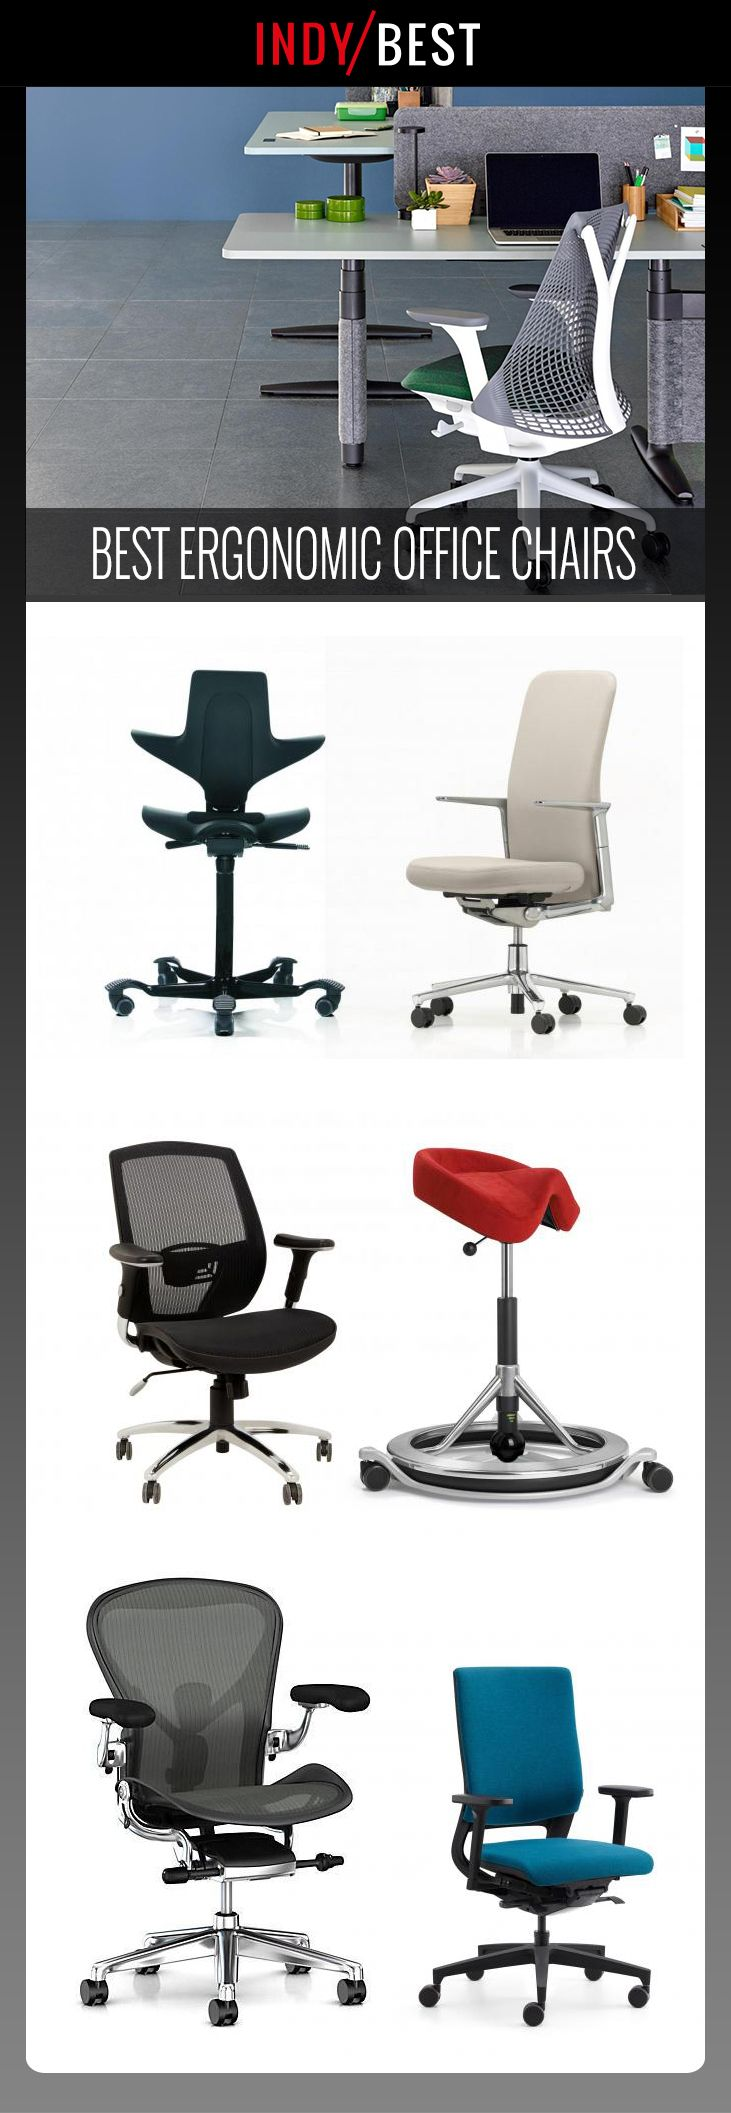 Best office chair for neck pain - 9 Best Ergonomic Office Chairs